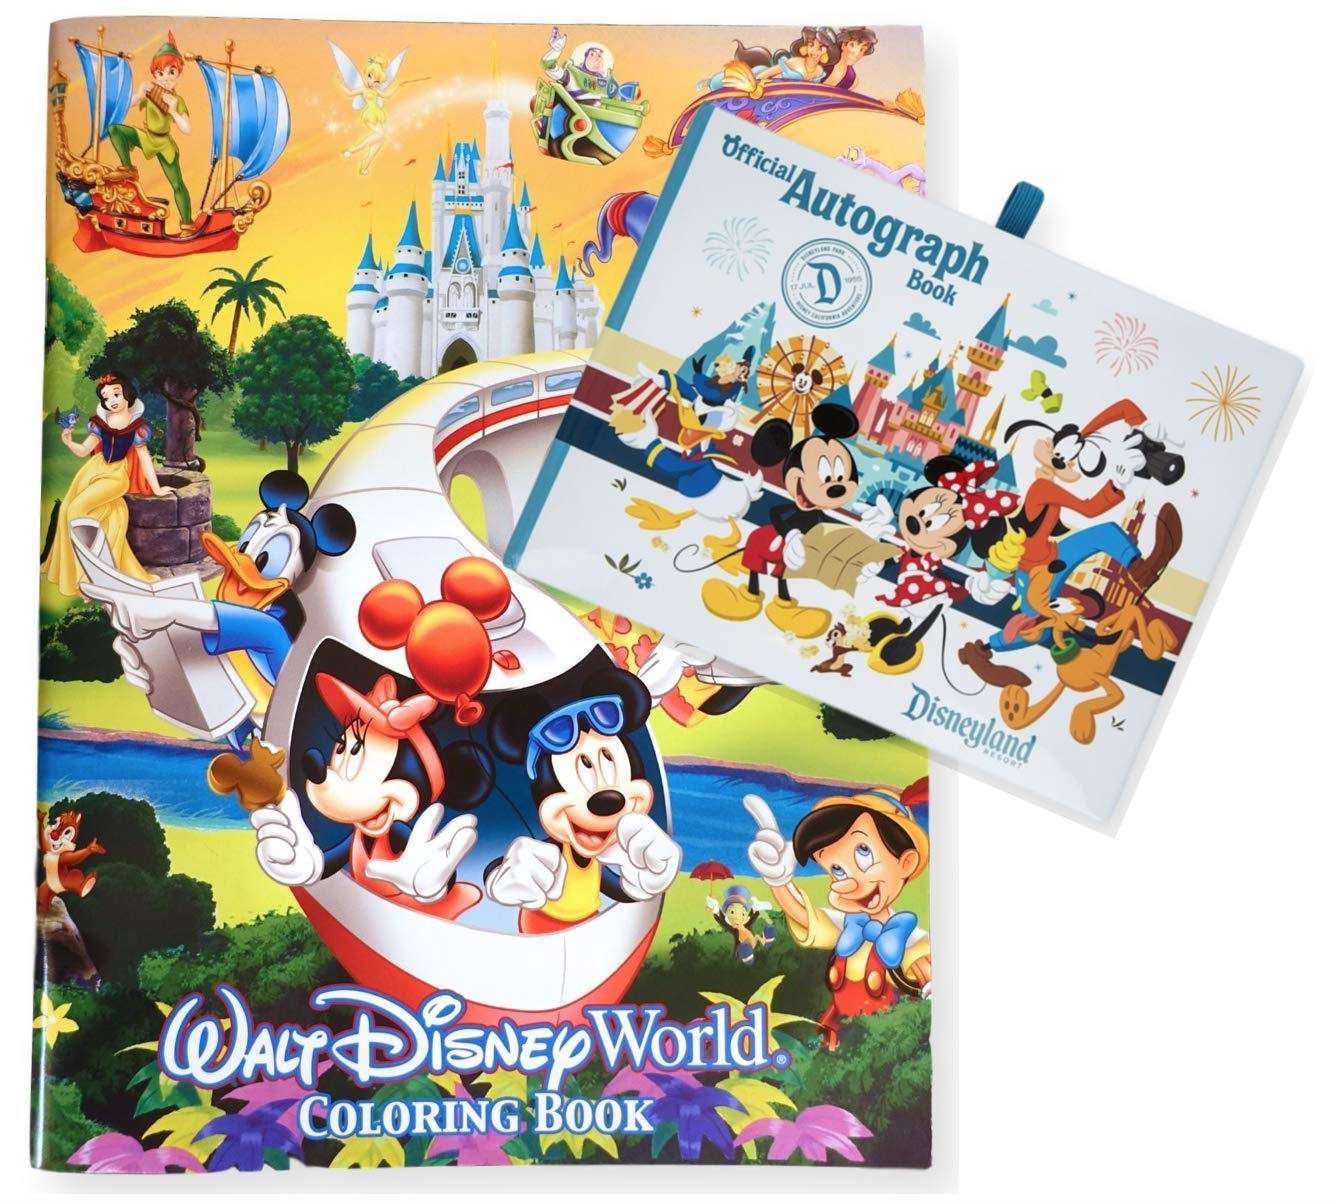 Disneyland Official Autograph Book and 96 Page Coloring Book